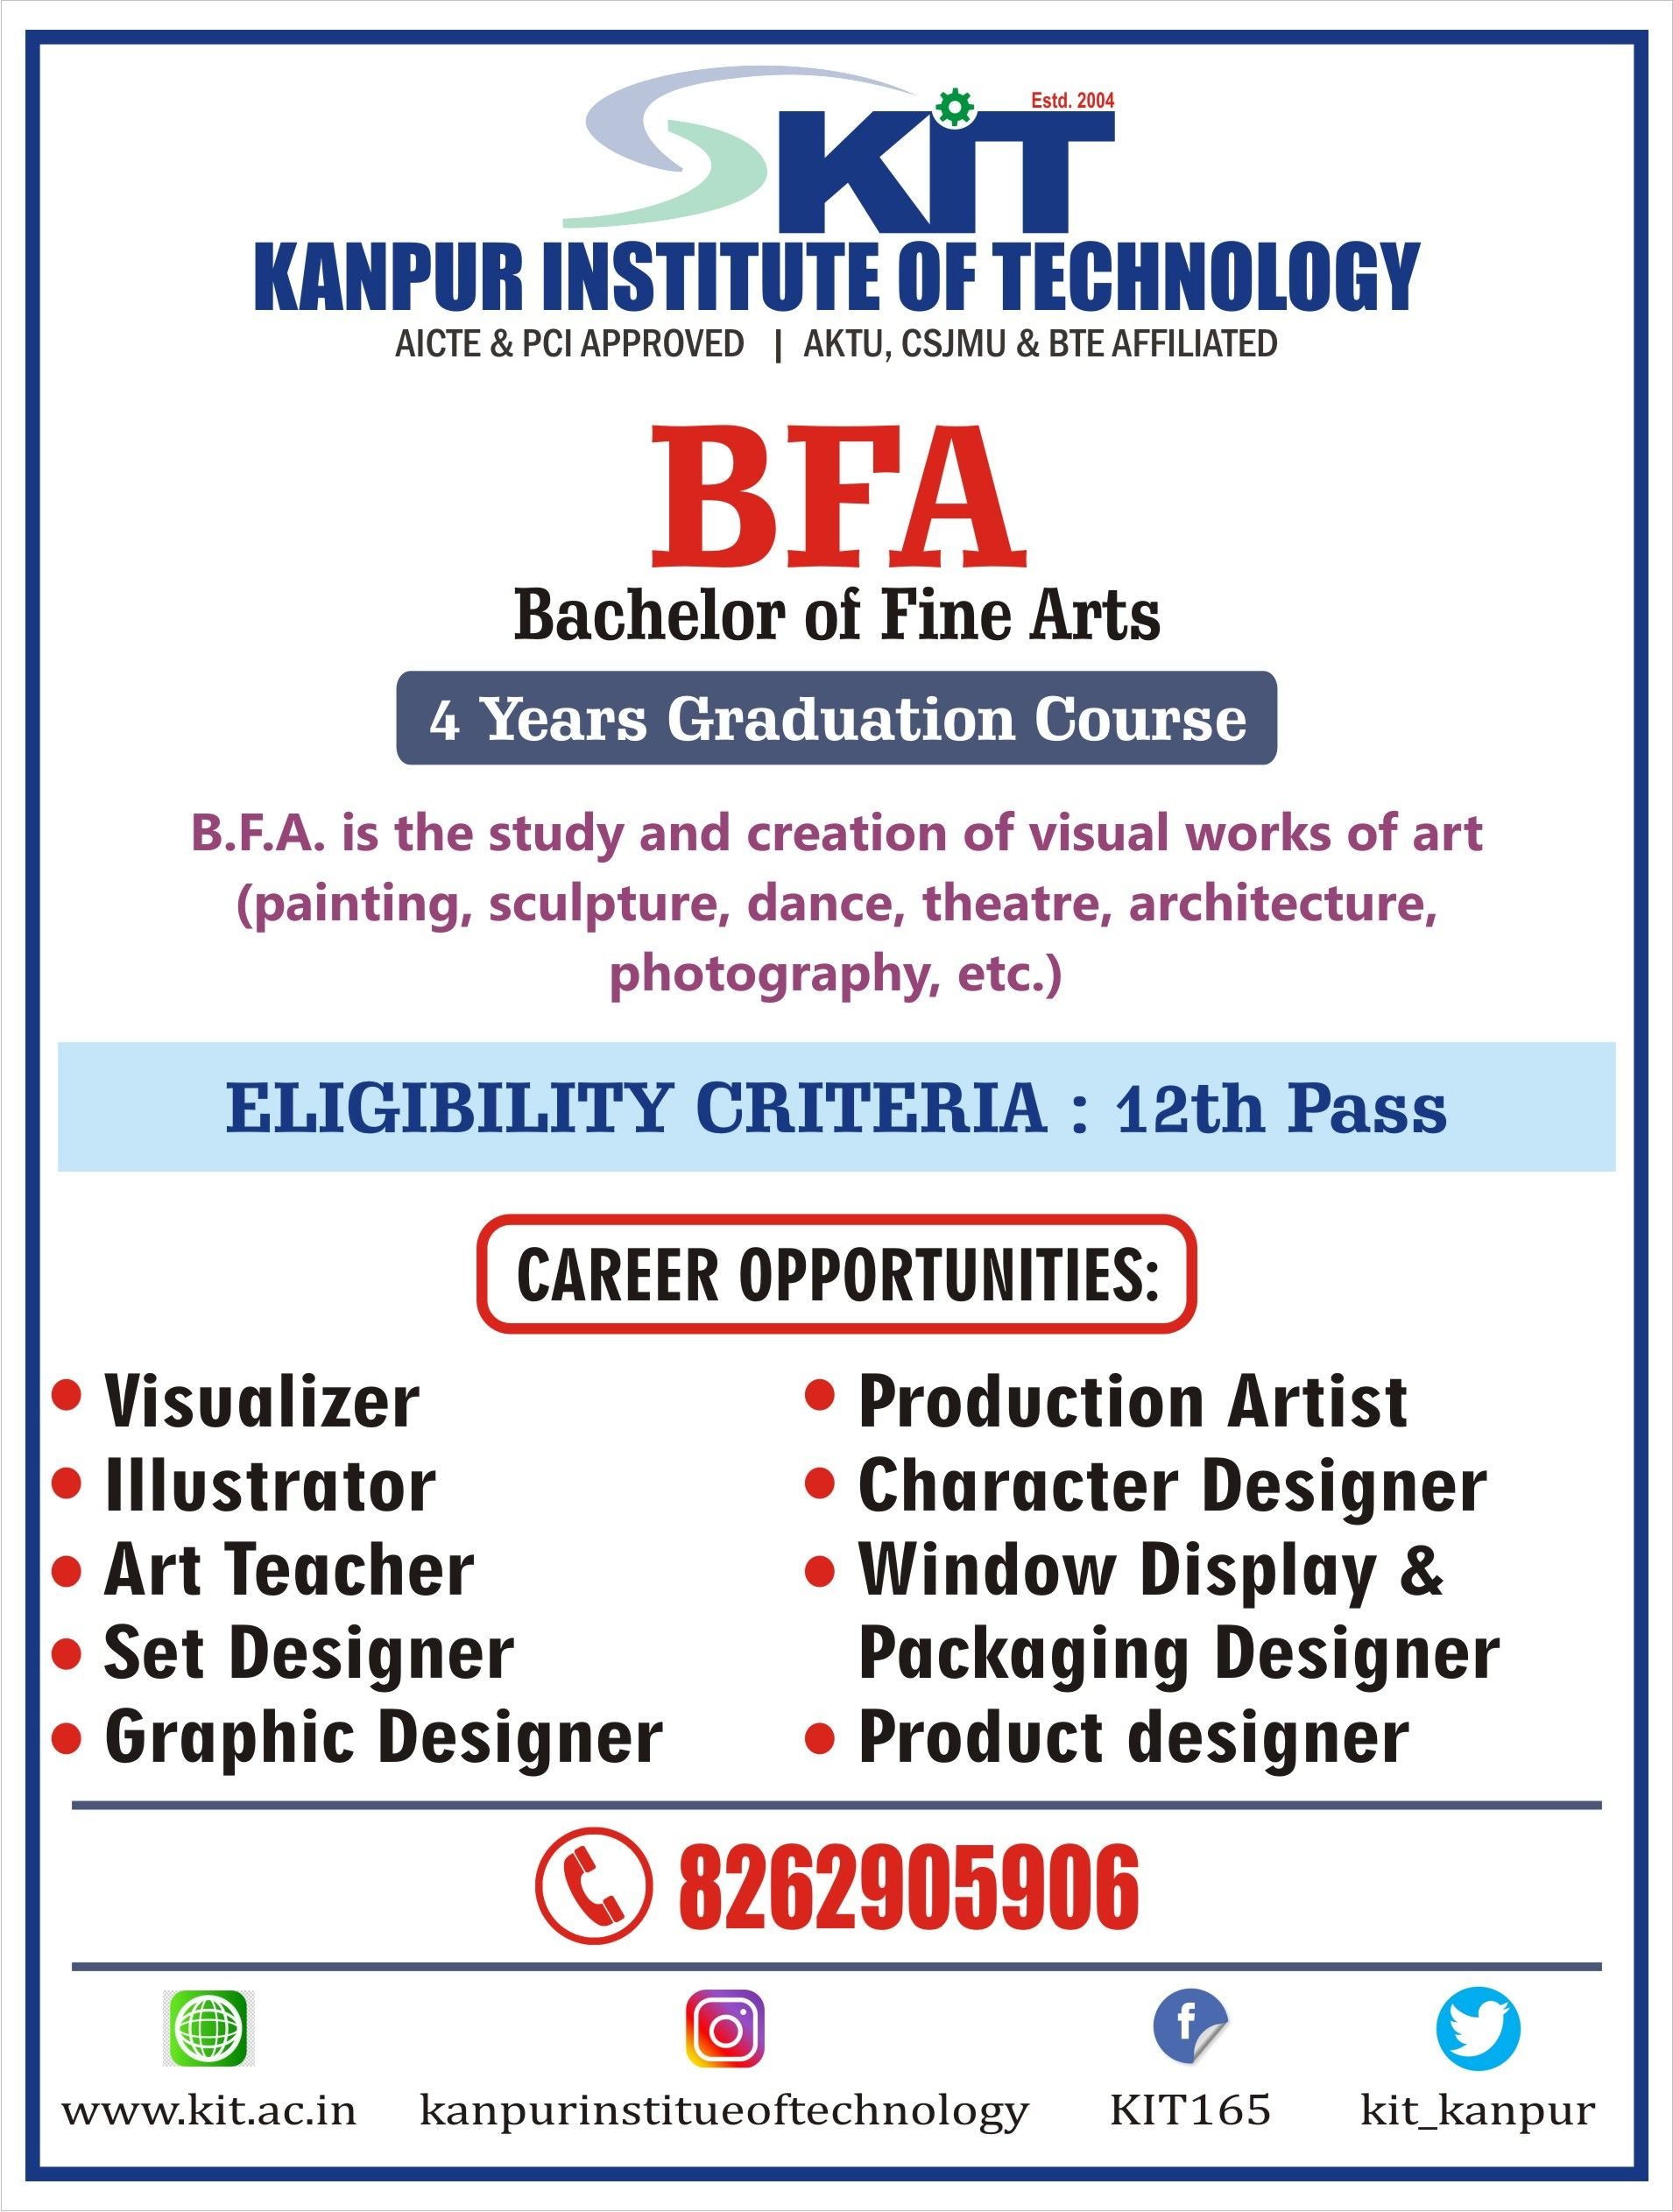 Pin by Kanpur Institute of Technology on Kanpur Institute